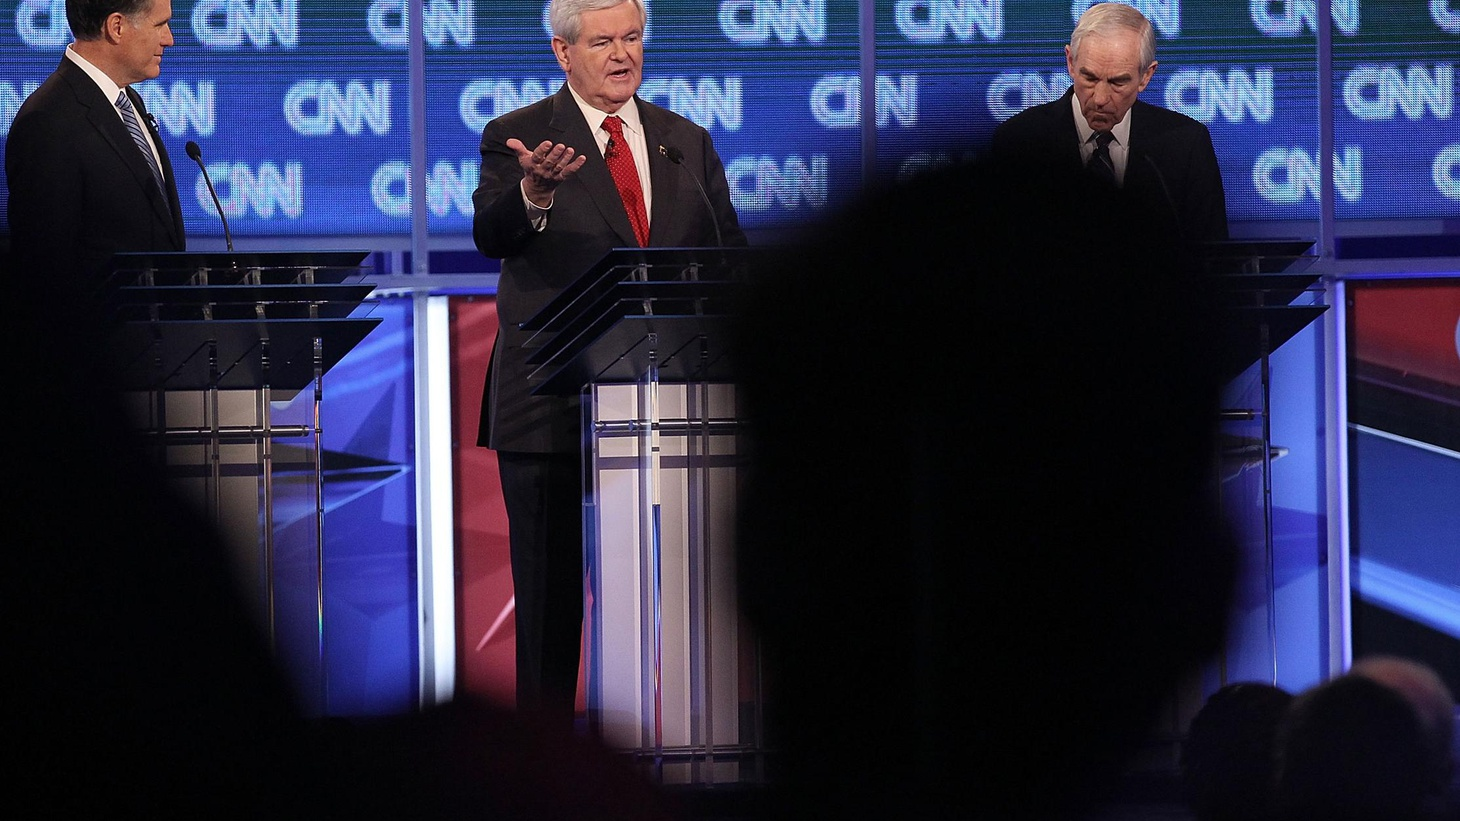 Will it all be over tomorrow, or did Gingrich, Santorum and Paul do enough damage in last night's debate to keep Romney from clinching the GOP nomination in South Carolina?